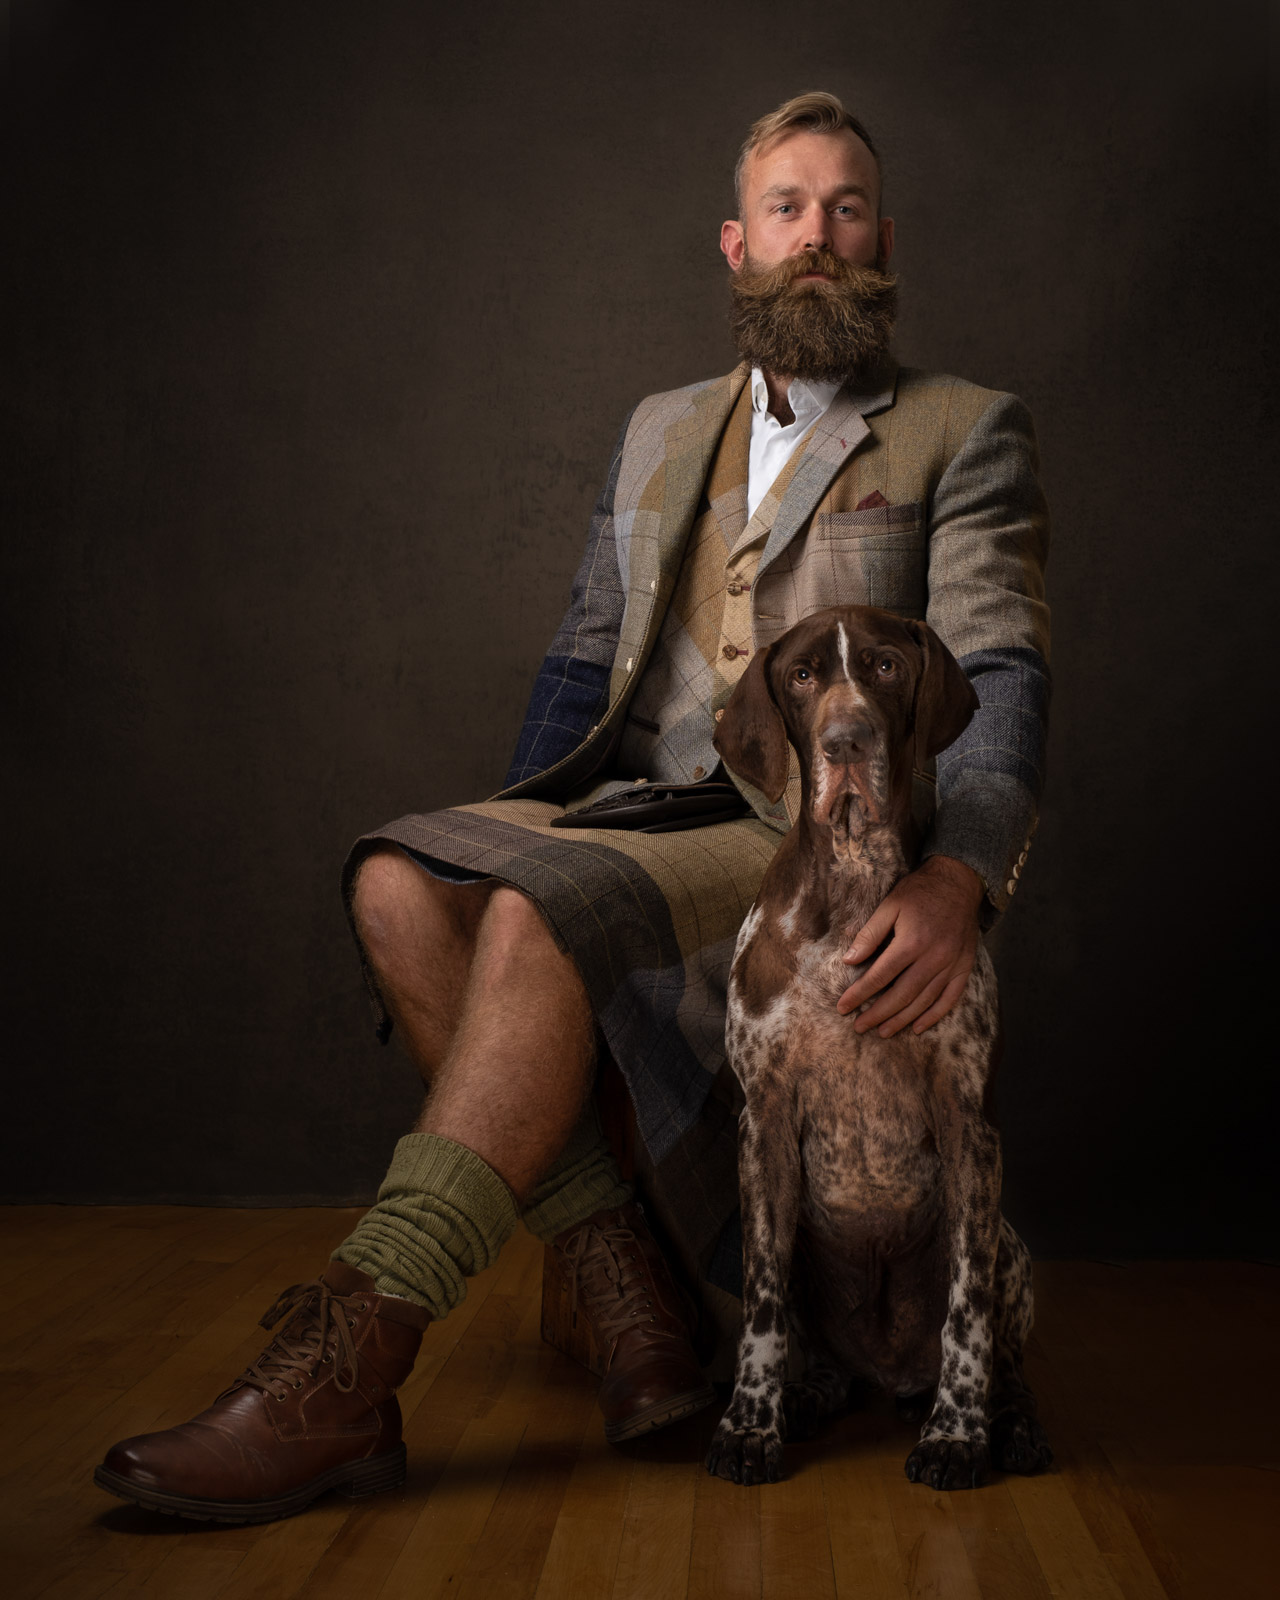 Canada's Premier Dog Photographer (and other unexpected photography stories)